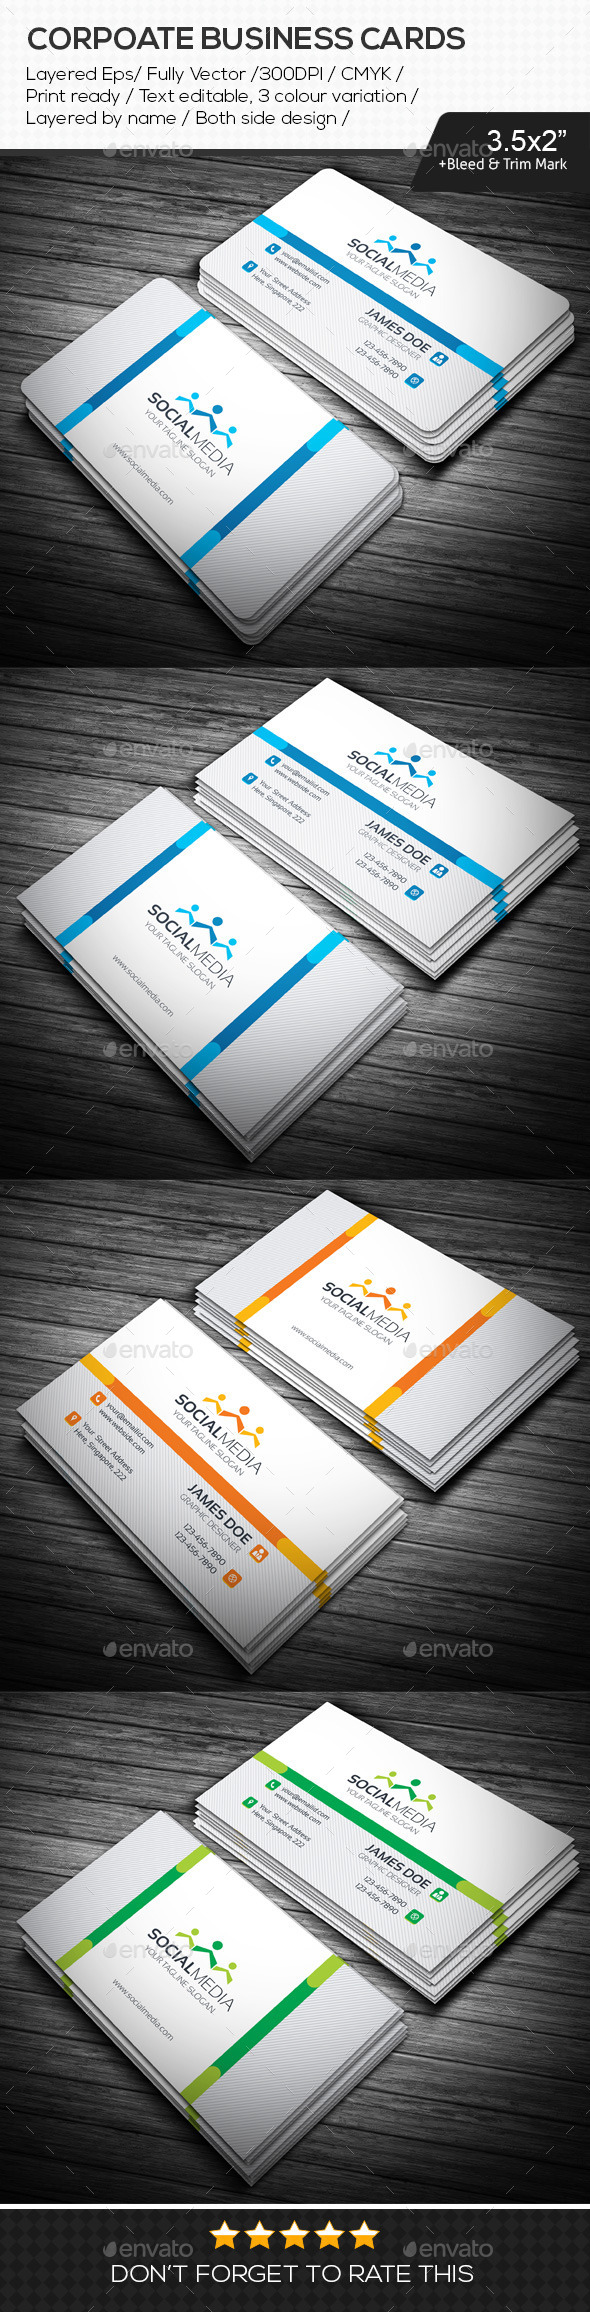 GraphicRiver Social Media Corporate Business Cards 10876465